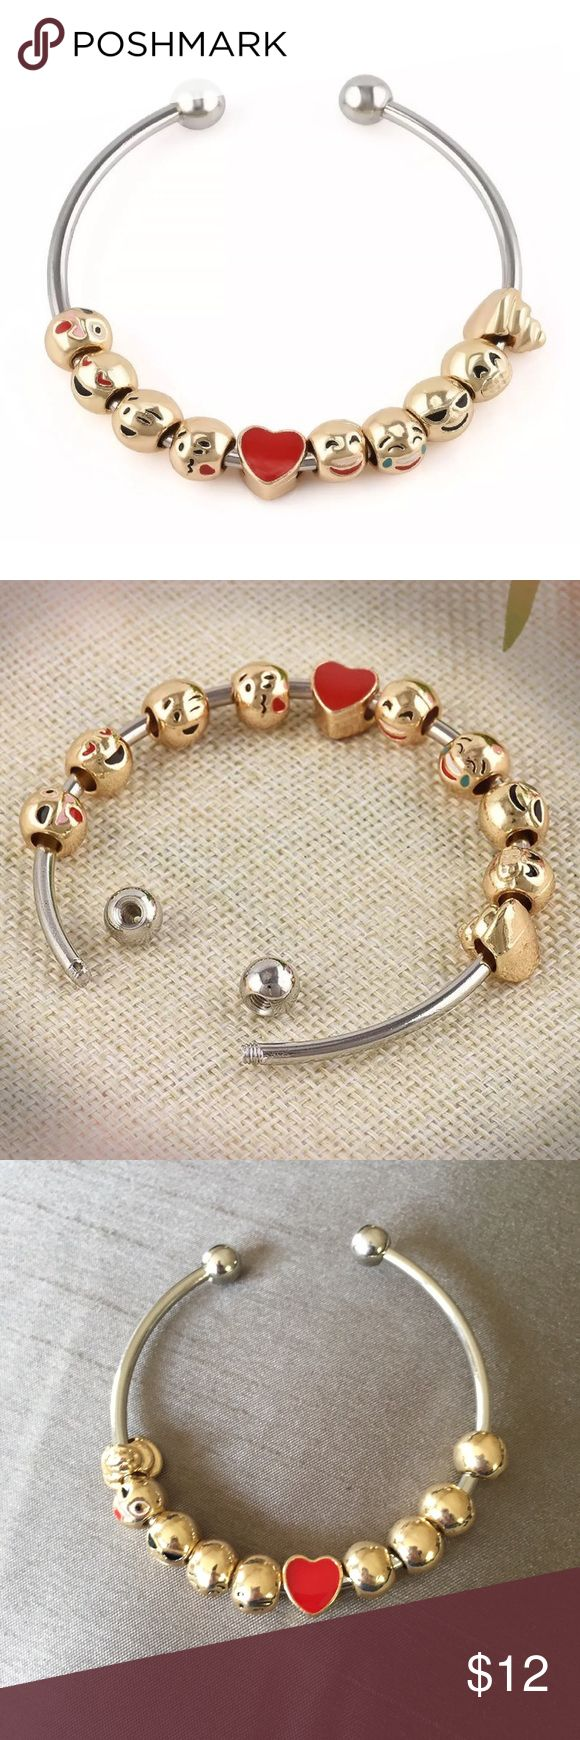 Emoji 10-Bead Charm Bracelet Bangle Emoji 10-Bead Charm Bracelet Bangle in silver tone metal with 10 gold tone emoji beads.  The  silver beads at the end of the bangle are removable so the emoji beads can be added or removed as you wish.  The bangle is a solid metal alloy, but has a little give to adjust to your wrist.  Fun bangle bracelet to express your emotions using emojis. Jewelry Bracelets